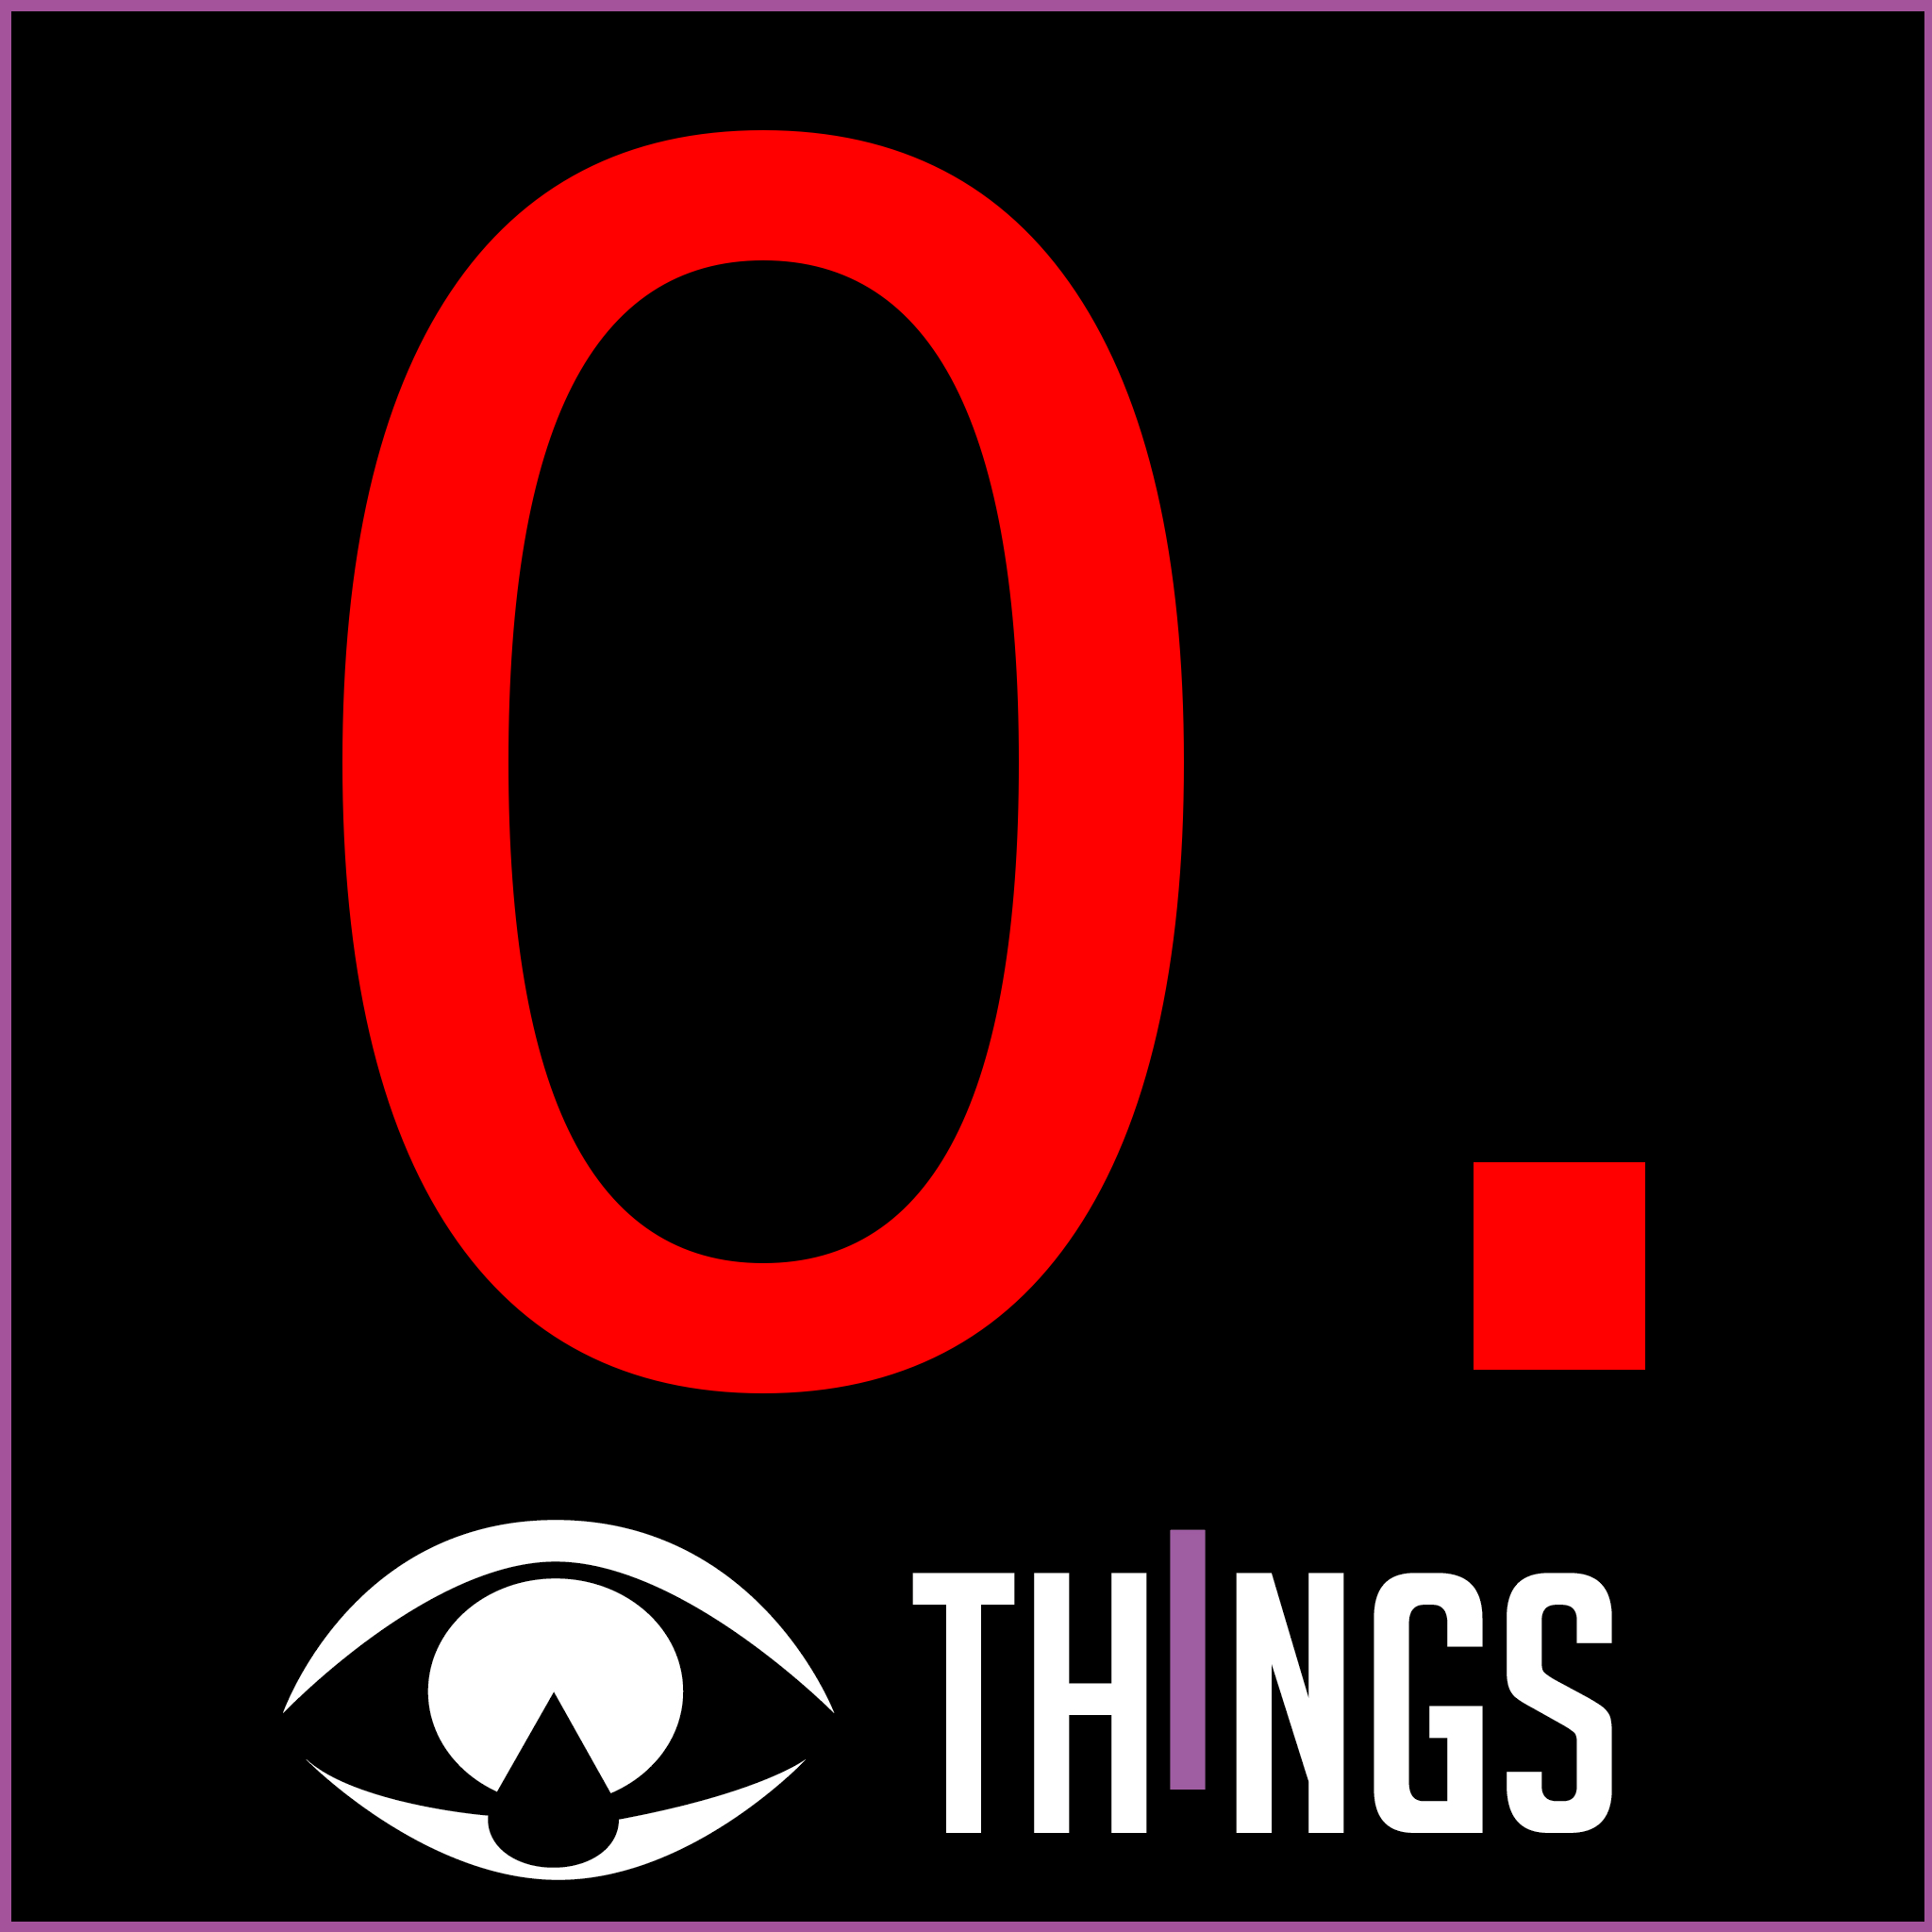 THINGS - it's alive V2 - front cover